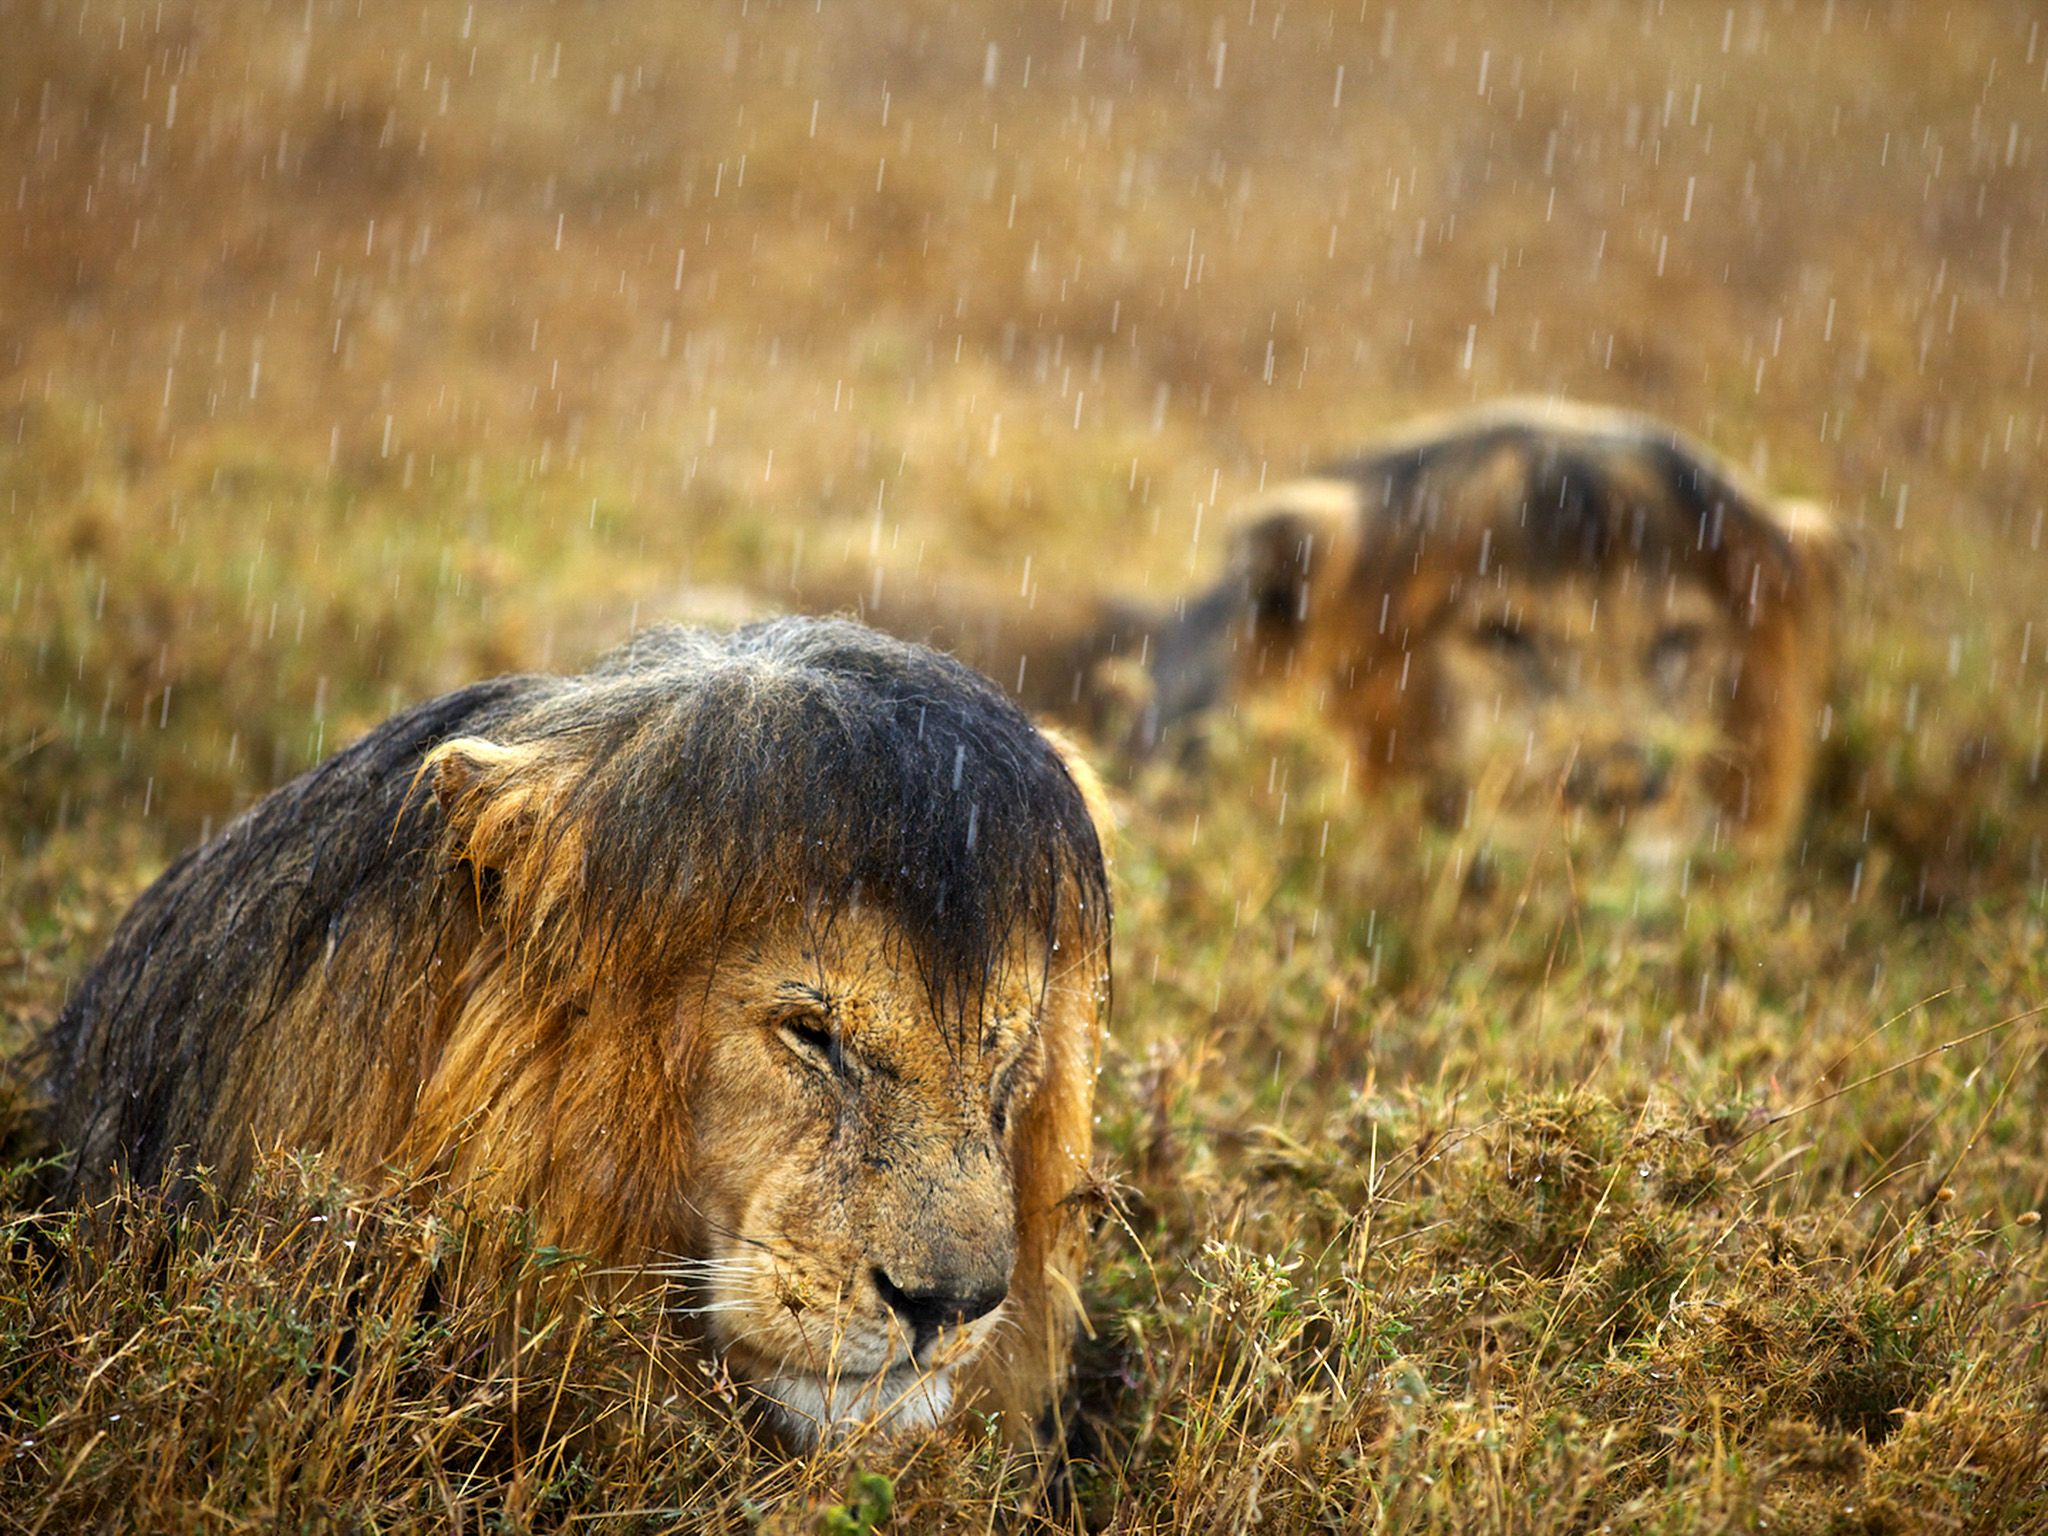 Lions getting soaked by the rain in Serengeti National Park, Tanzania. This image is from Lion... [Photo of the day - فوریه 2015]